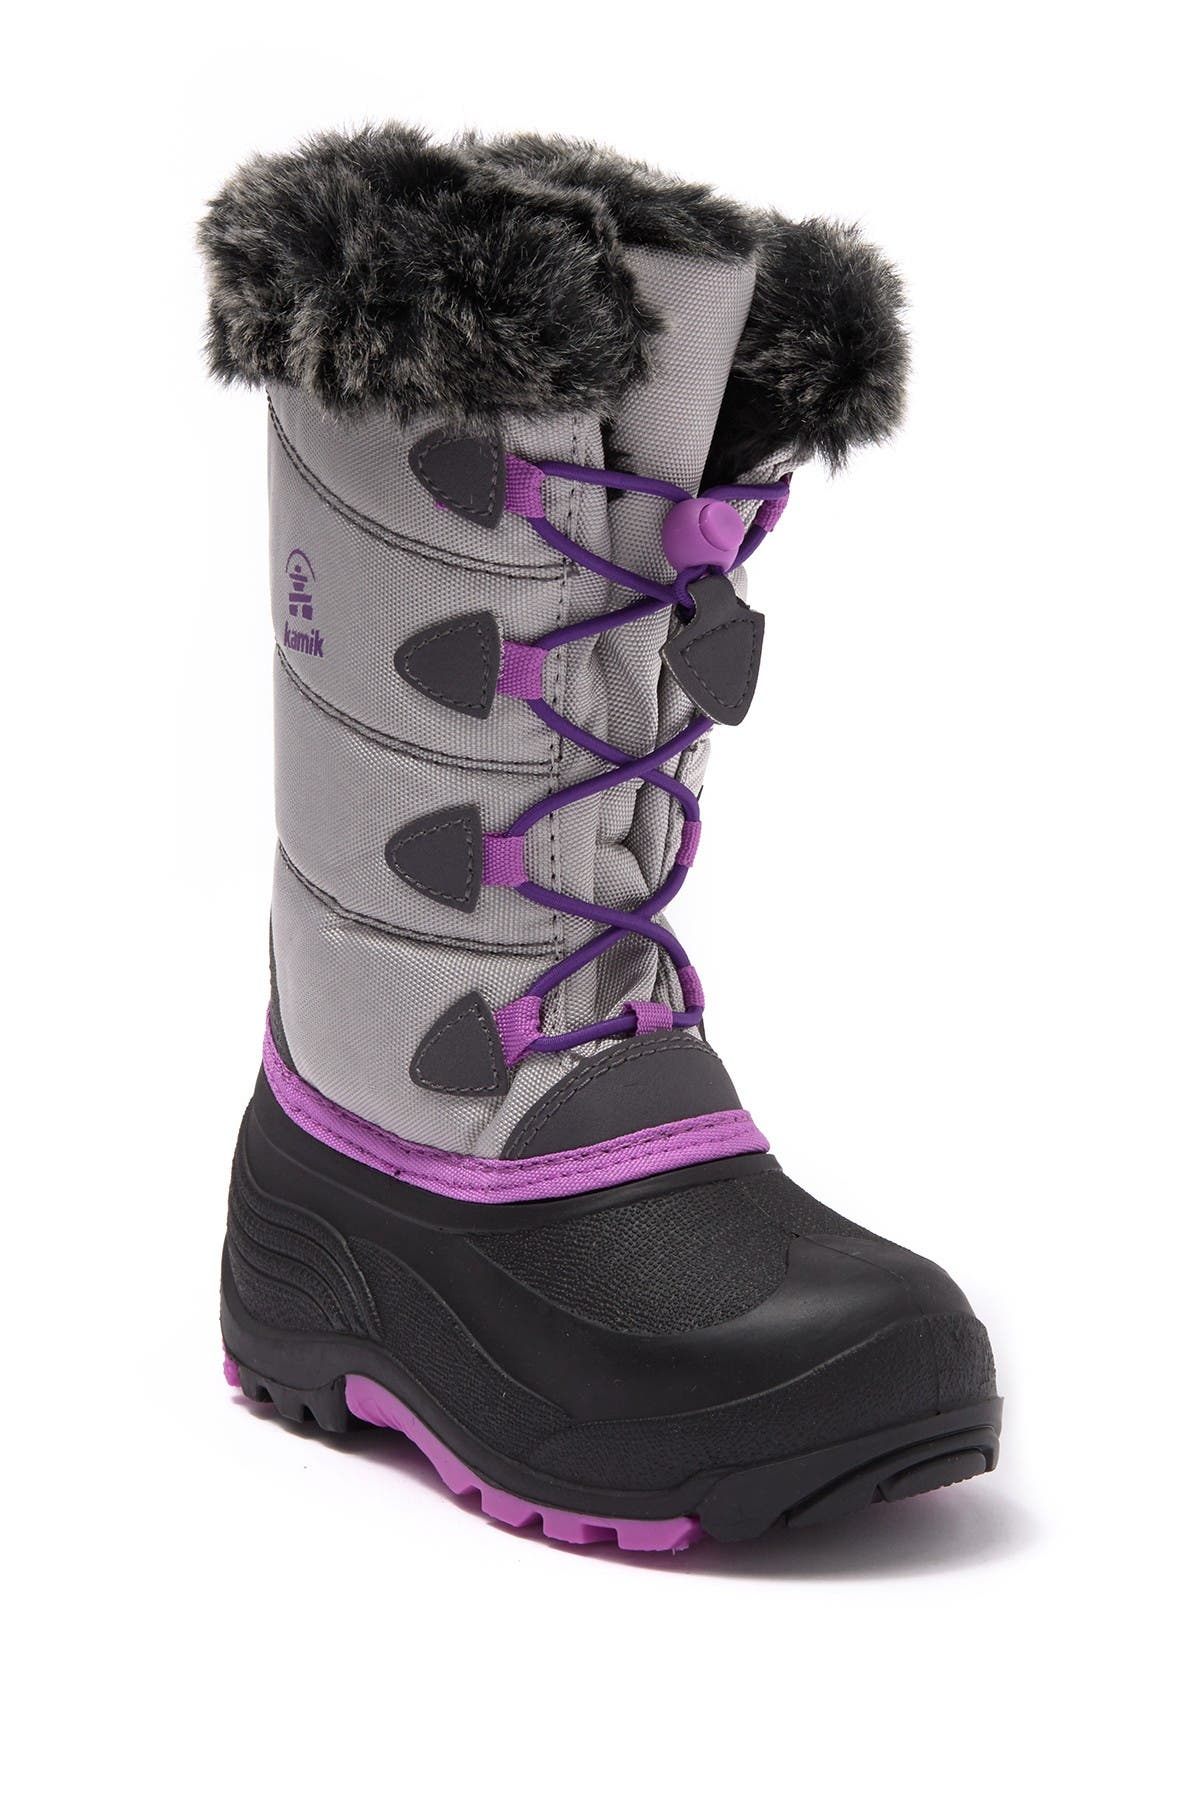 Image of Kamik SnowGypsy3 Waterproof Faux Fur Trim Boot